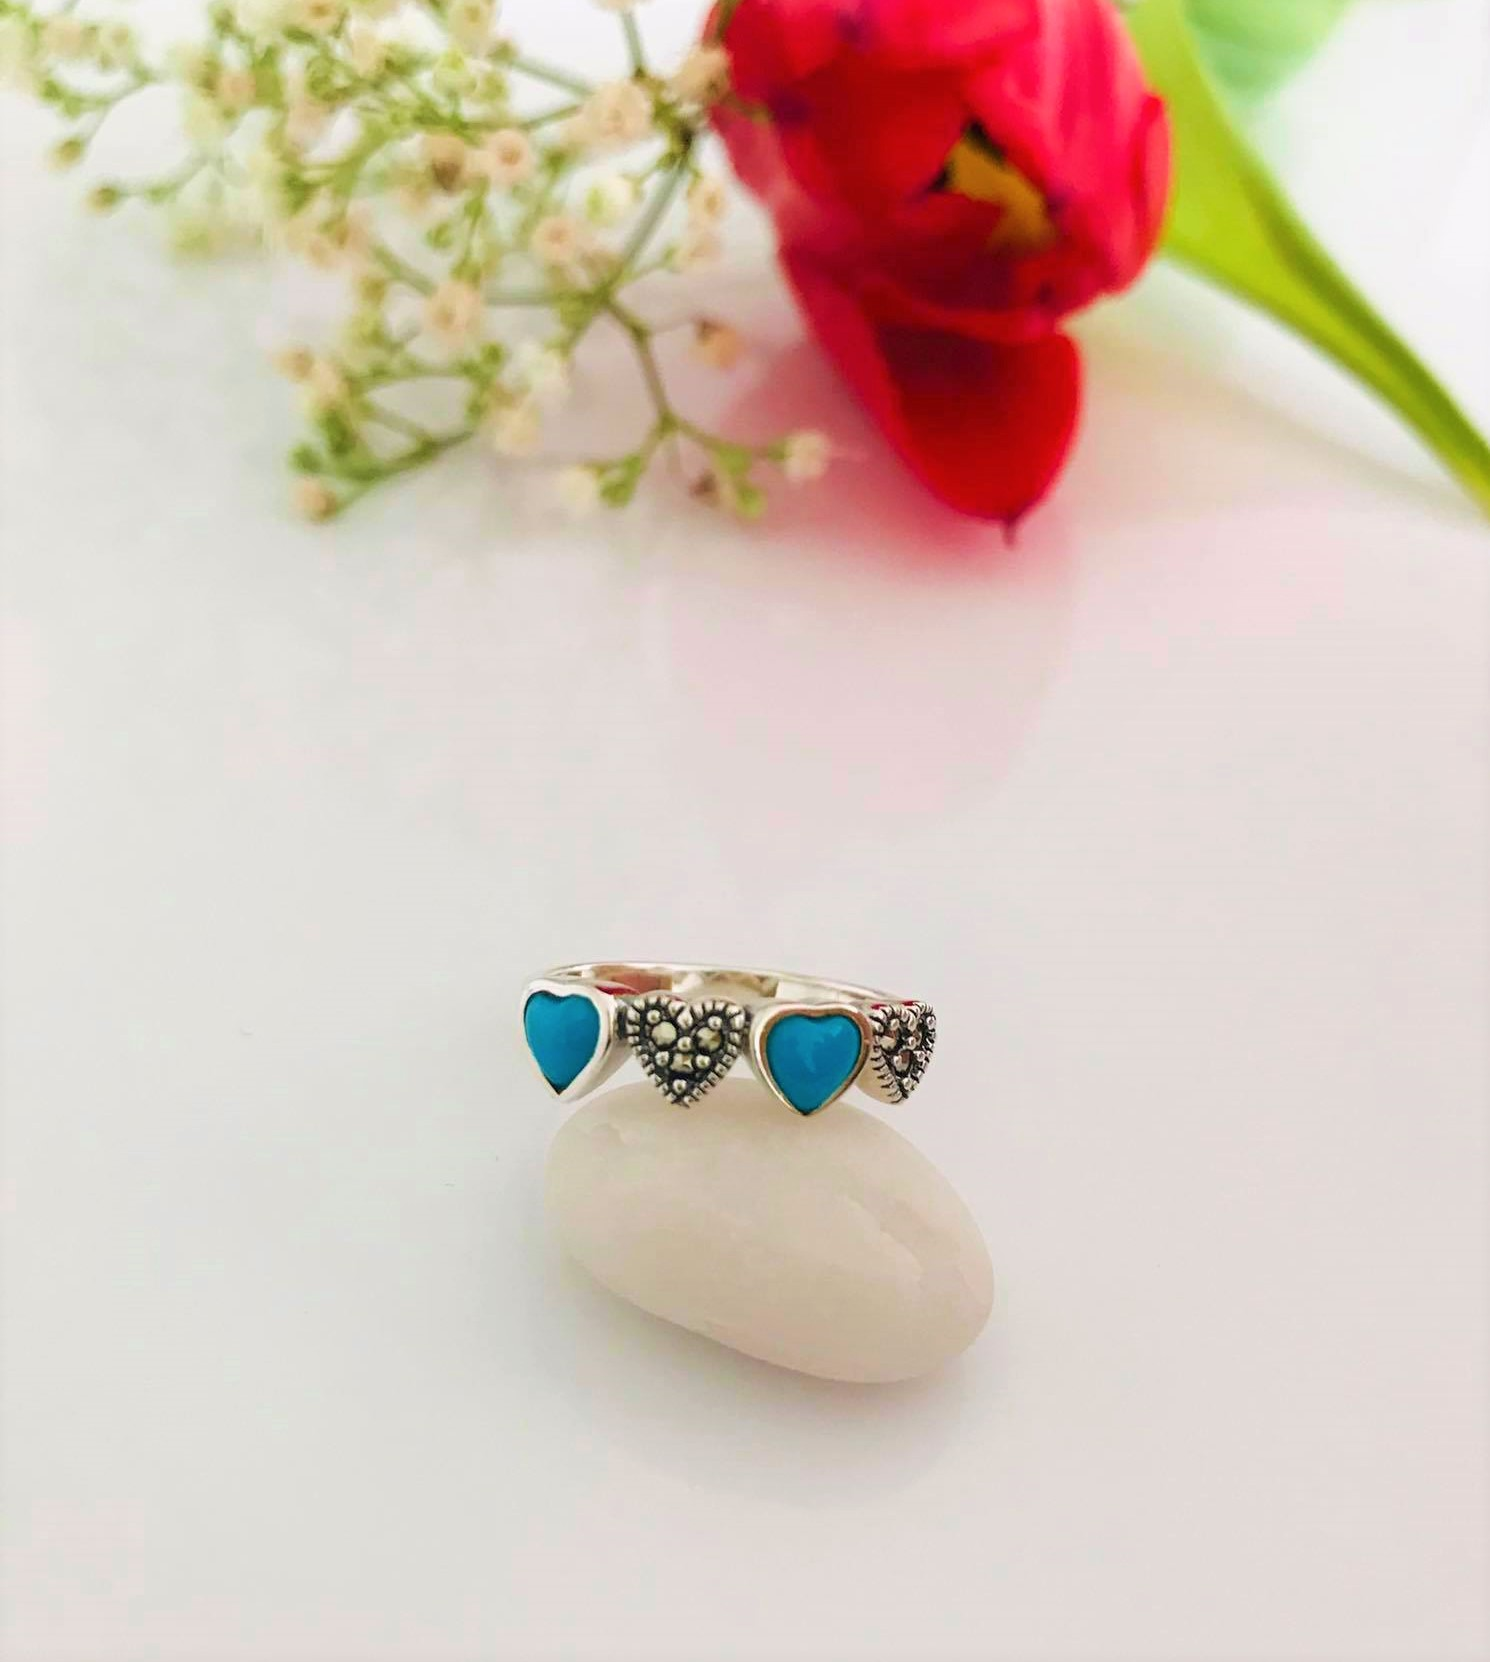 Turquoise and Marcasite set in Sterling Silver Ring Image